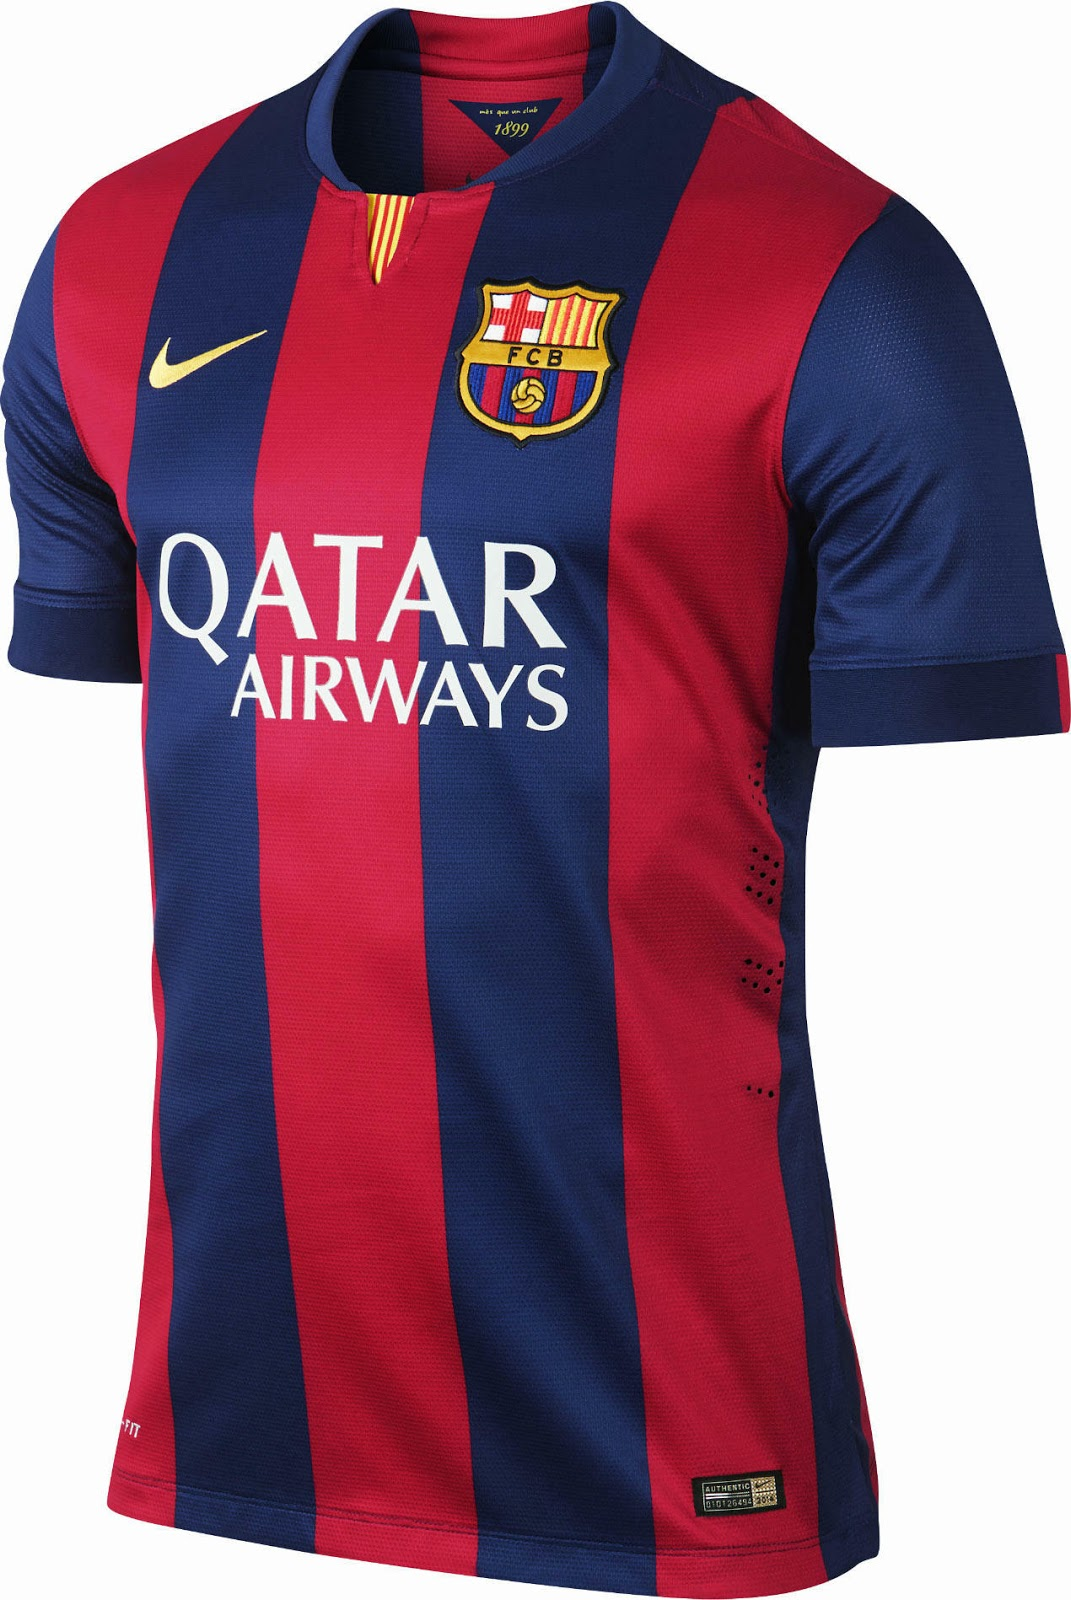 228e3543d94 The new FC Barcelona 2014-15 comes with less vertical stripes and features  blue sleeves. The striking detail of the new Barca 2014-2015 kit is the blue  ...